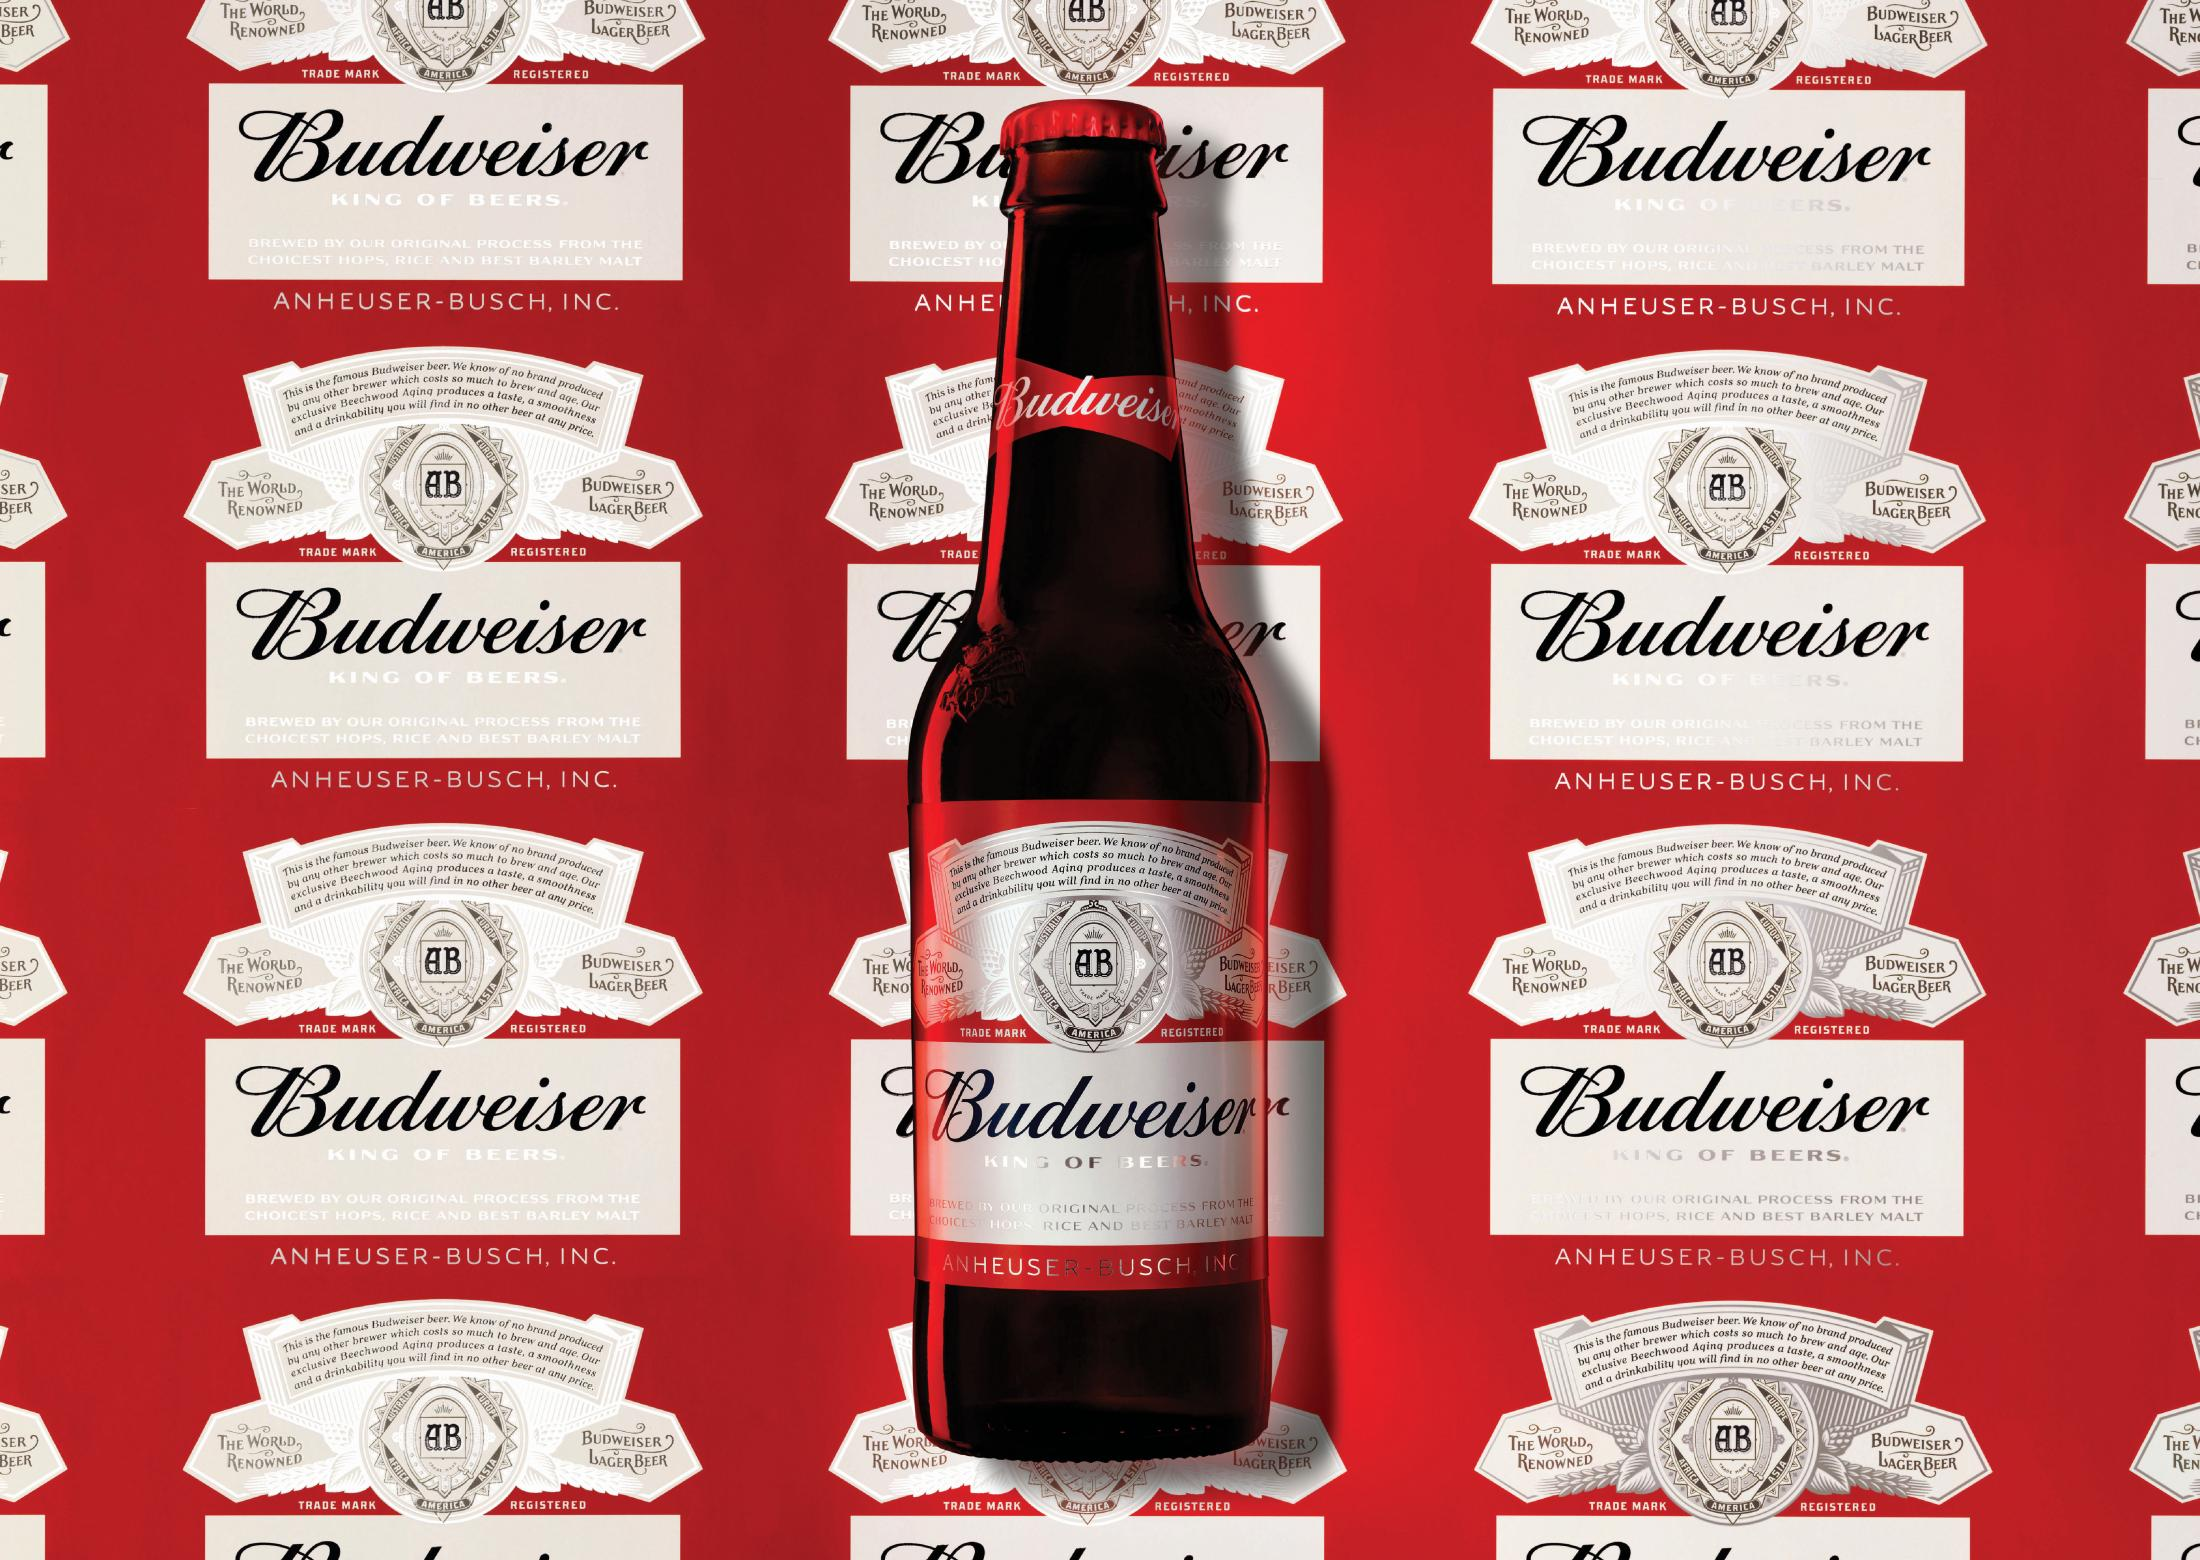 Image Media for Budweiser Global Redesign